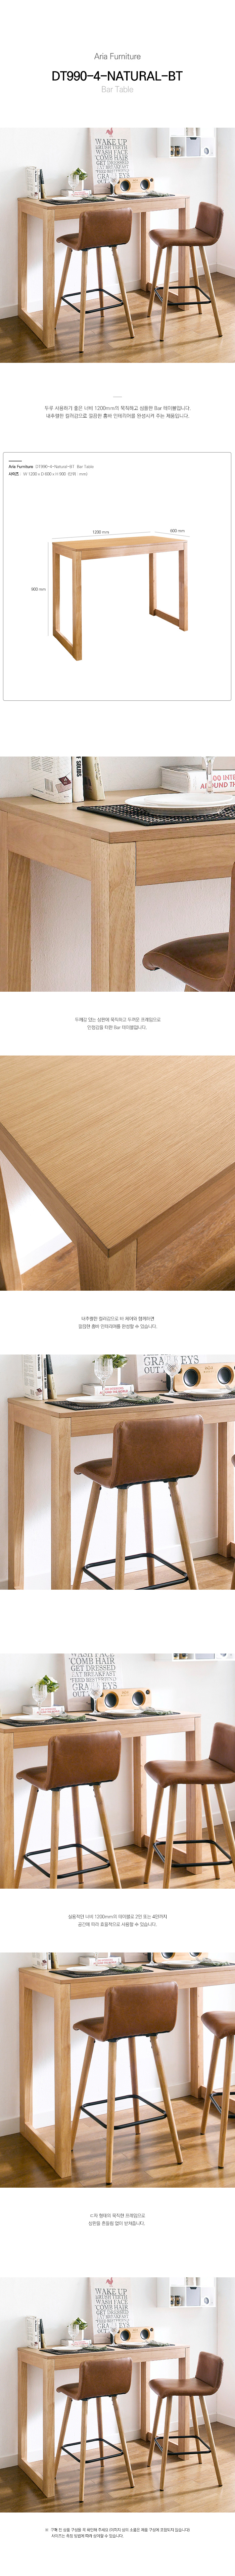 6_5_DT990_4_Oak_Table.jpg